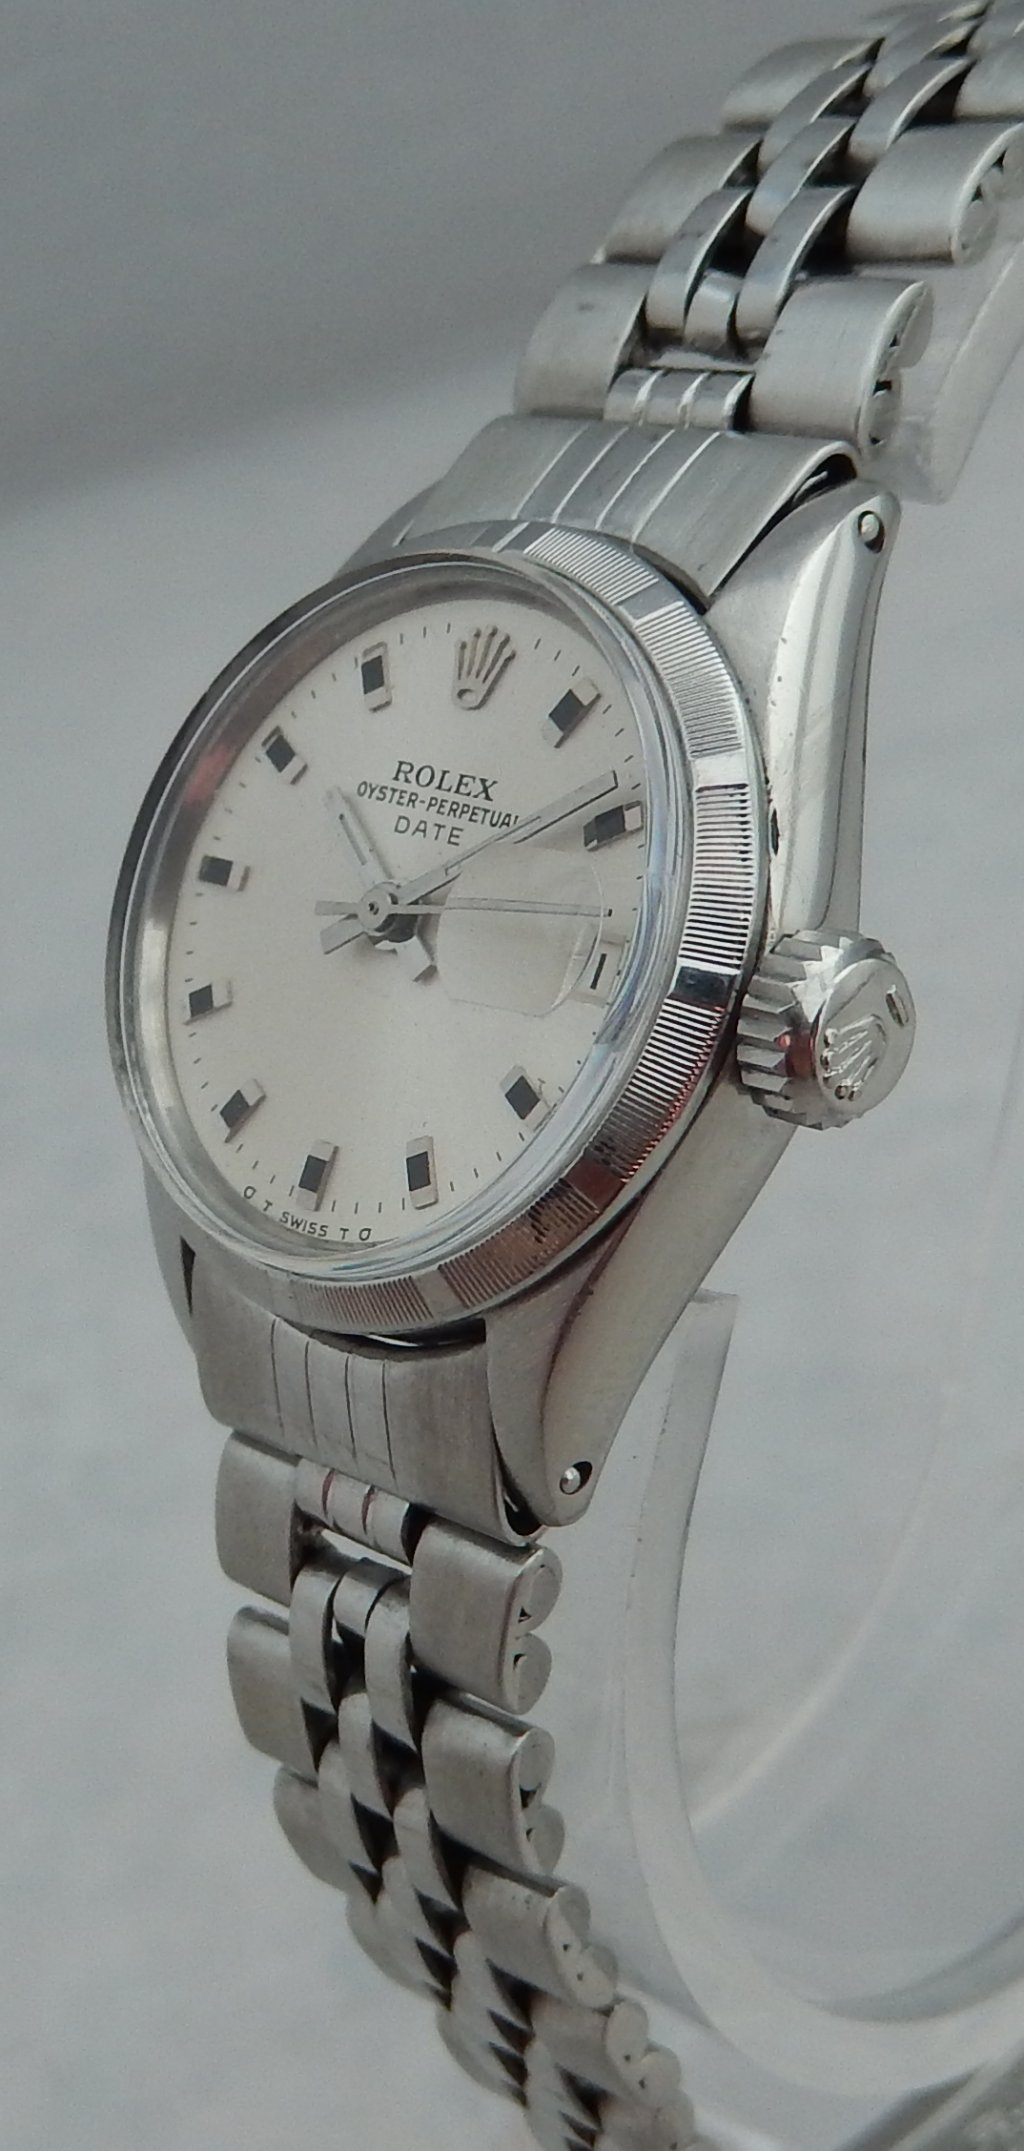 datejust vintage front amsterdam watches shop rolex